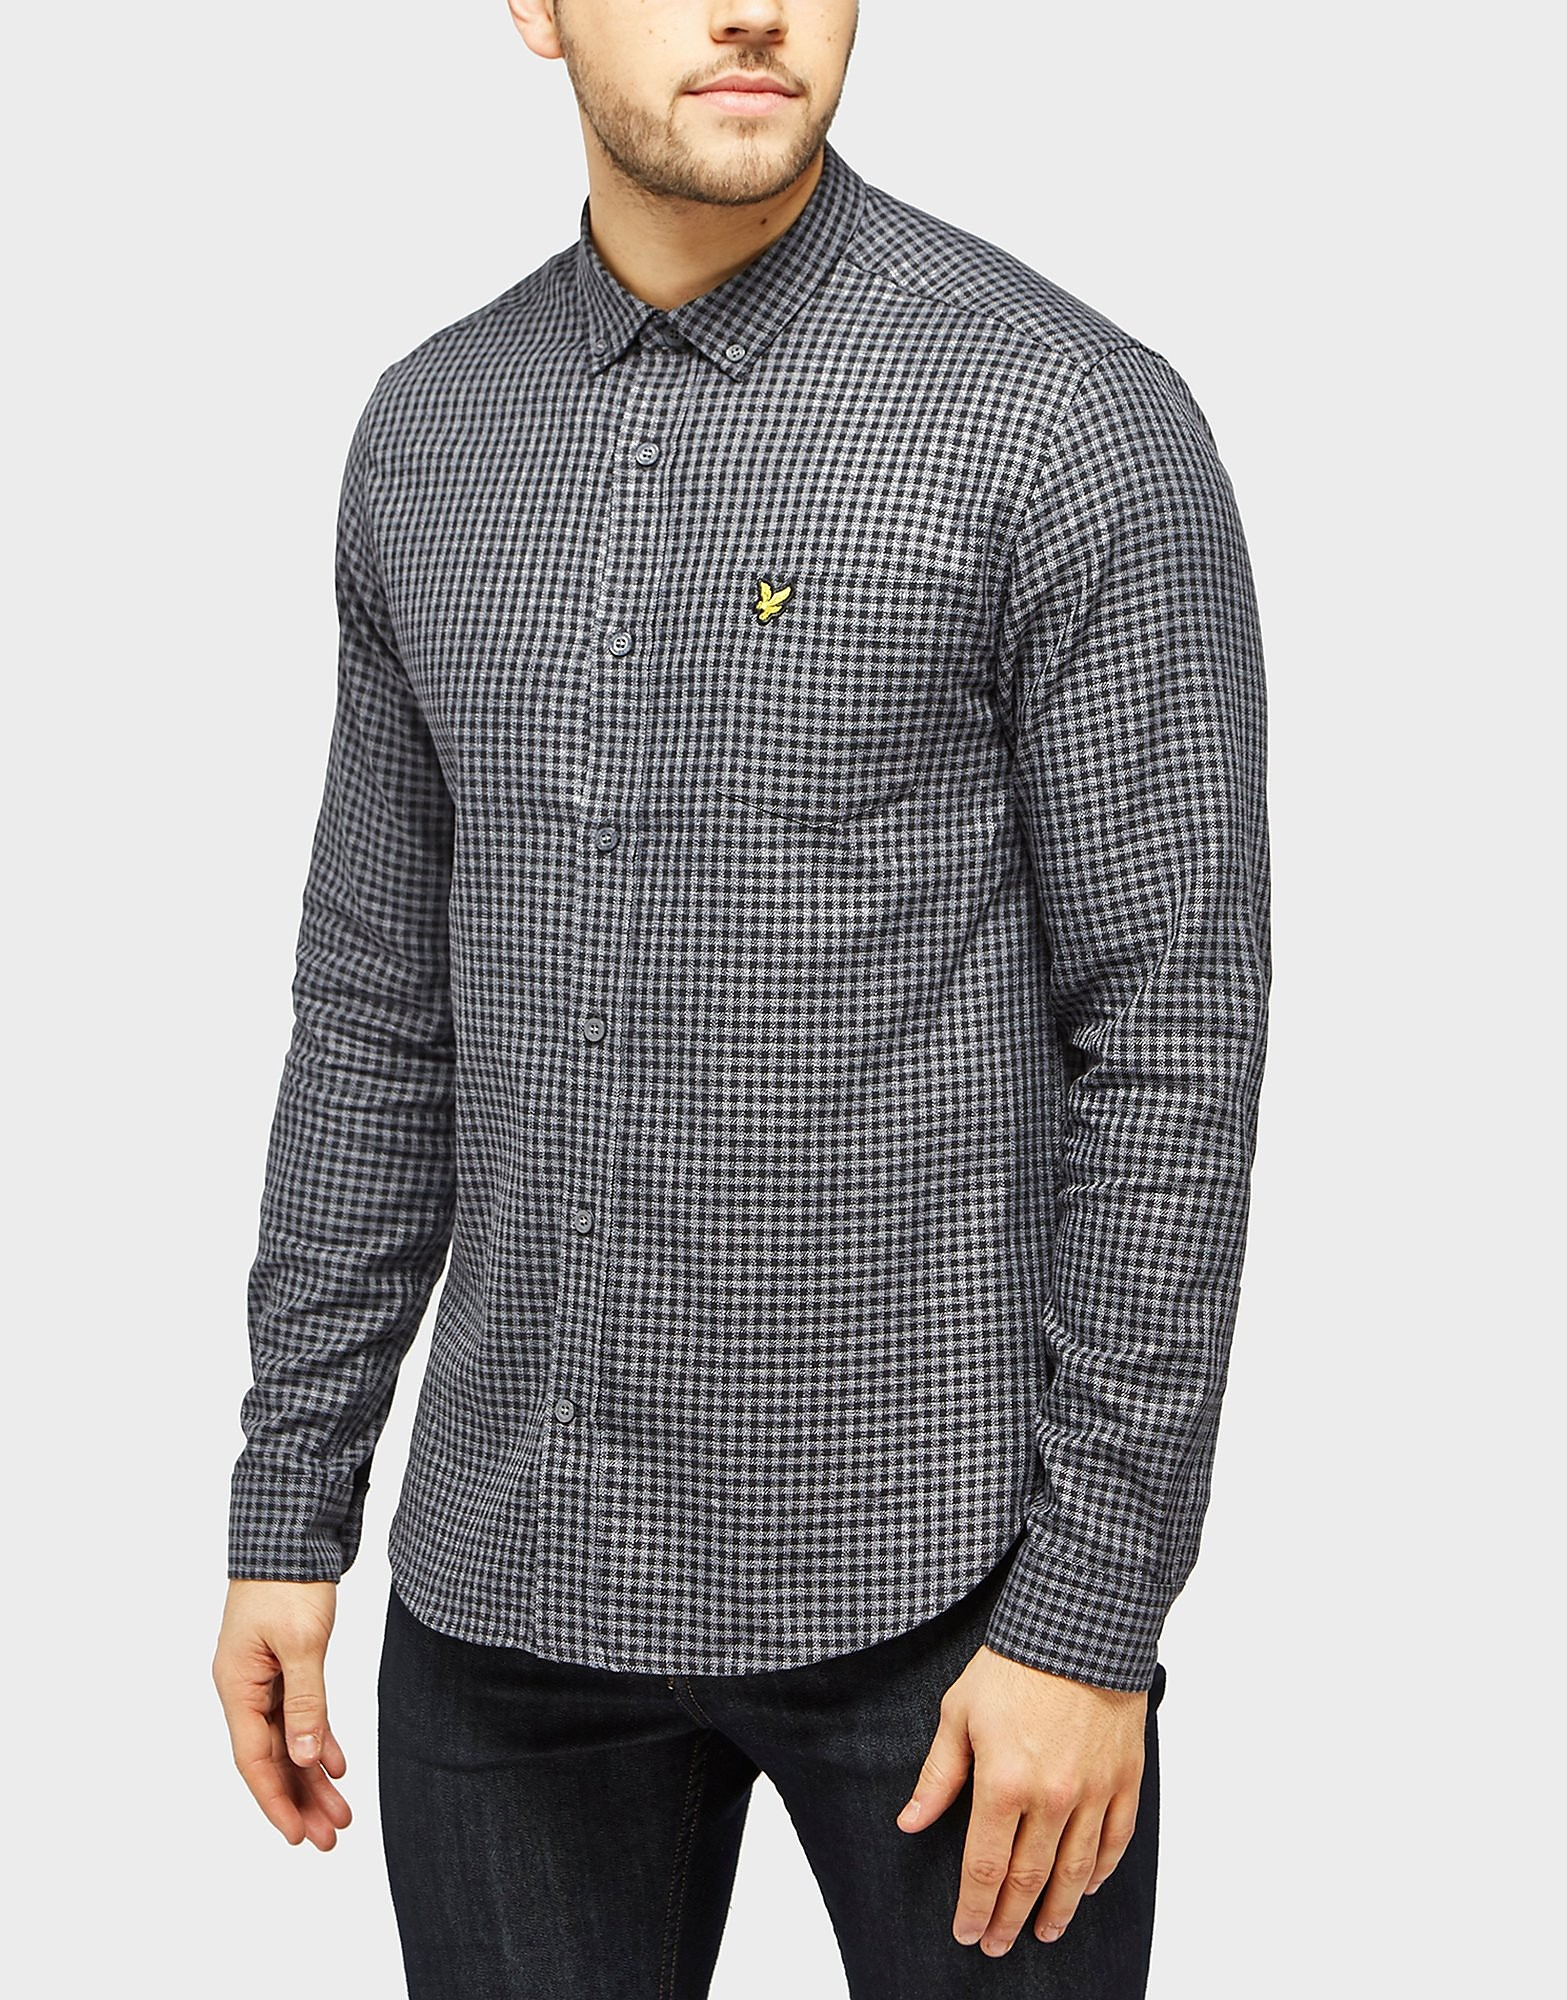 Lyle & Scott Mouline Gingham Shirt